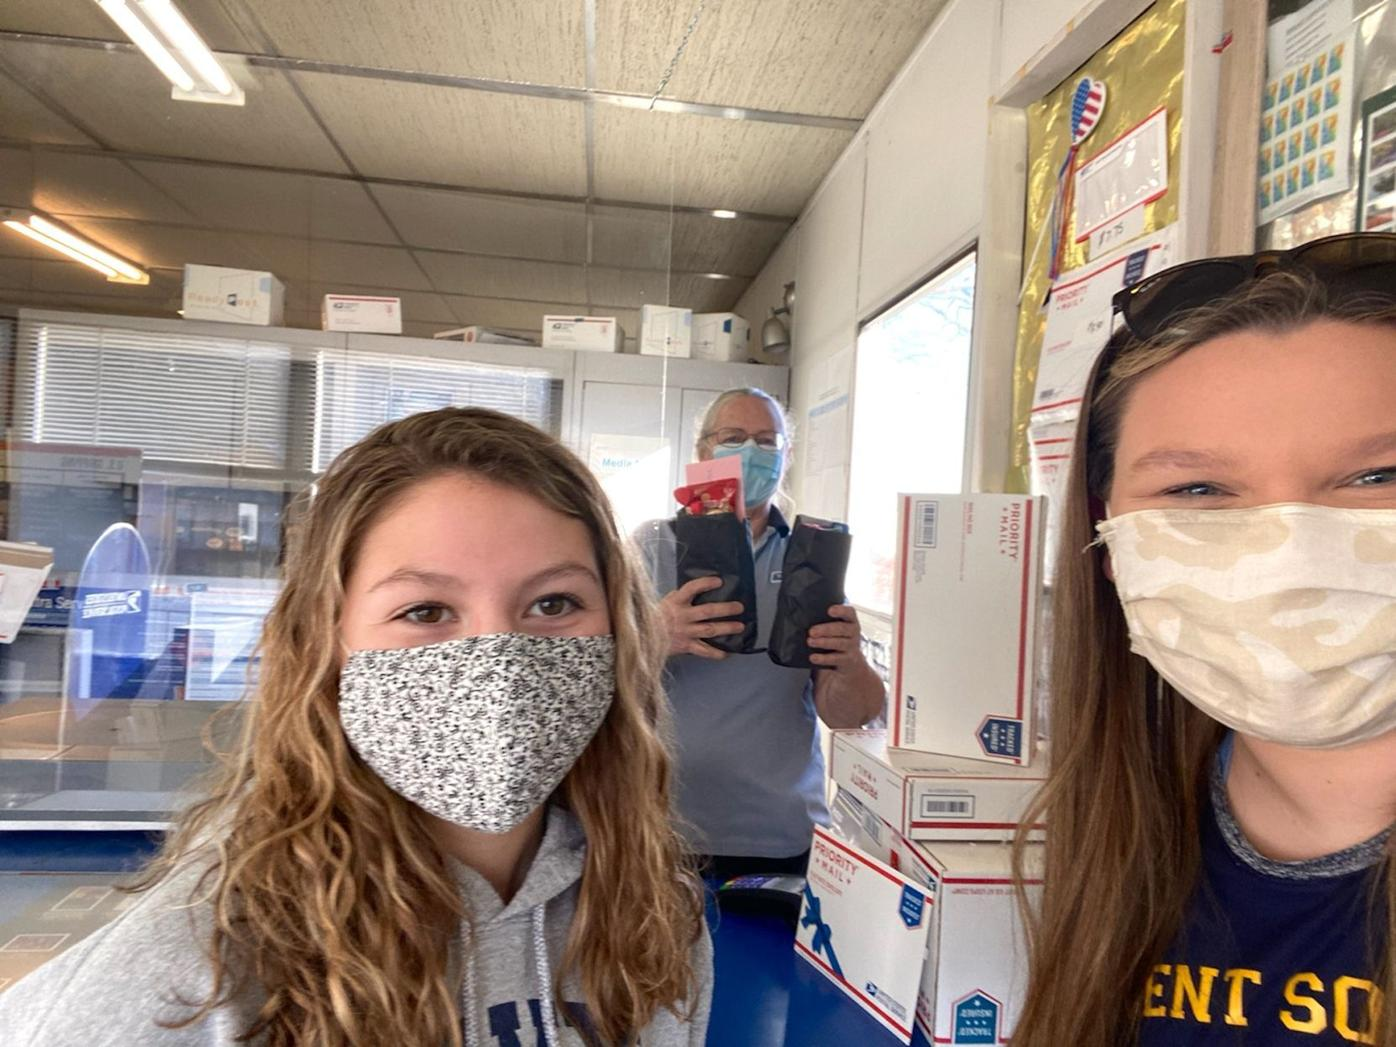 Youth group delivers care packages to postal workers